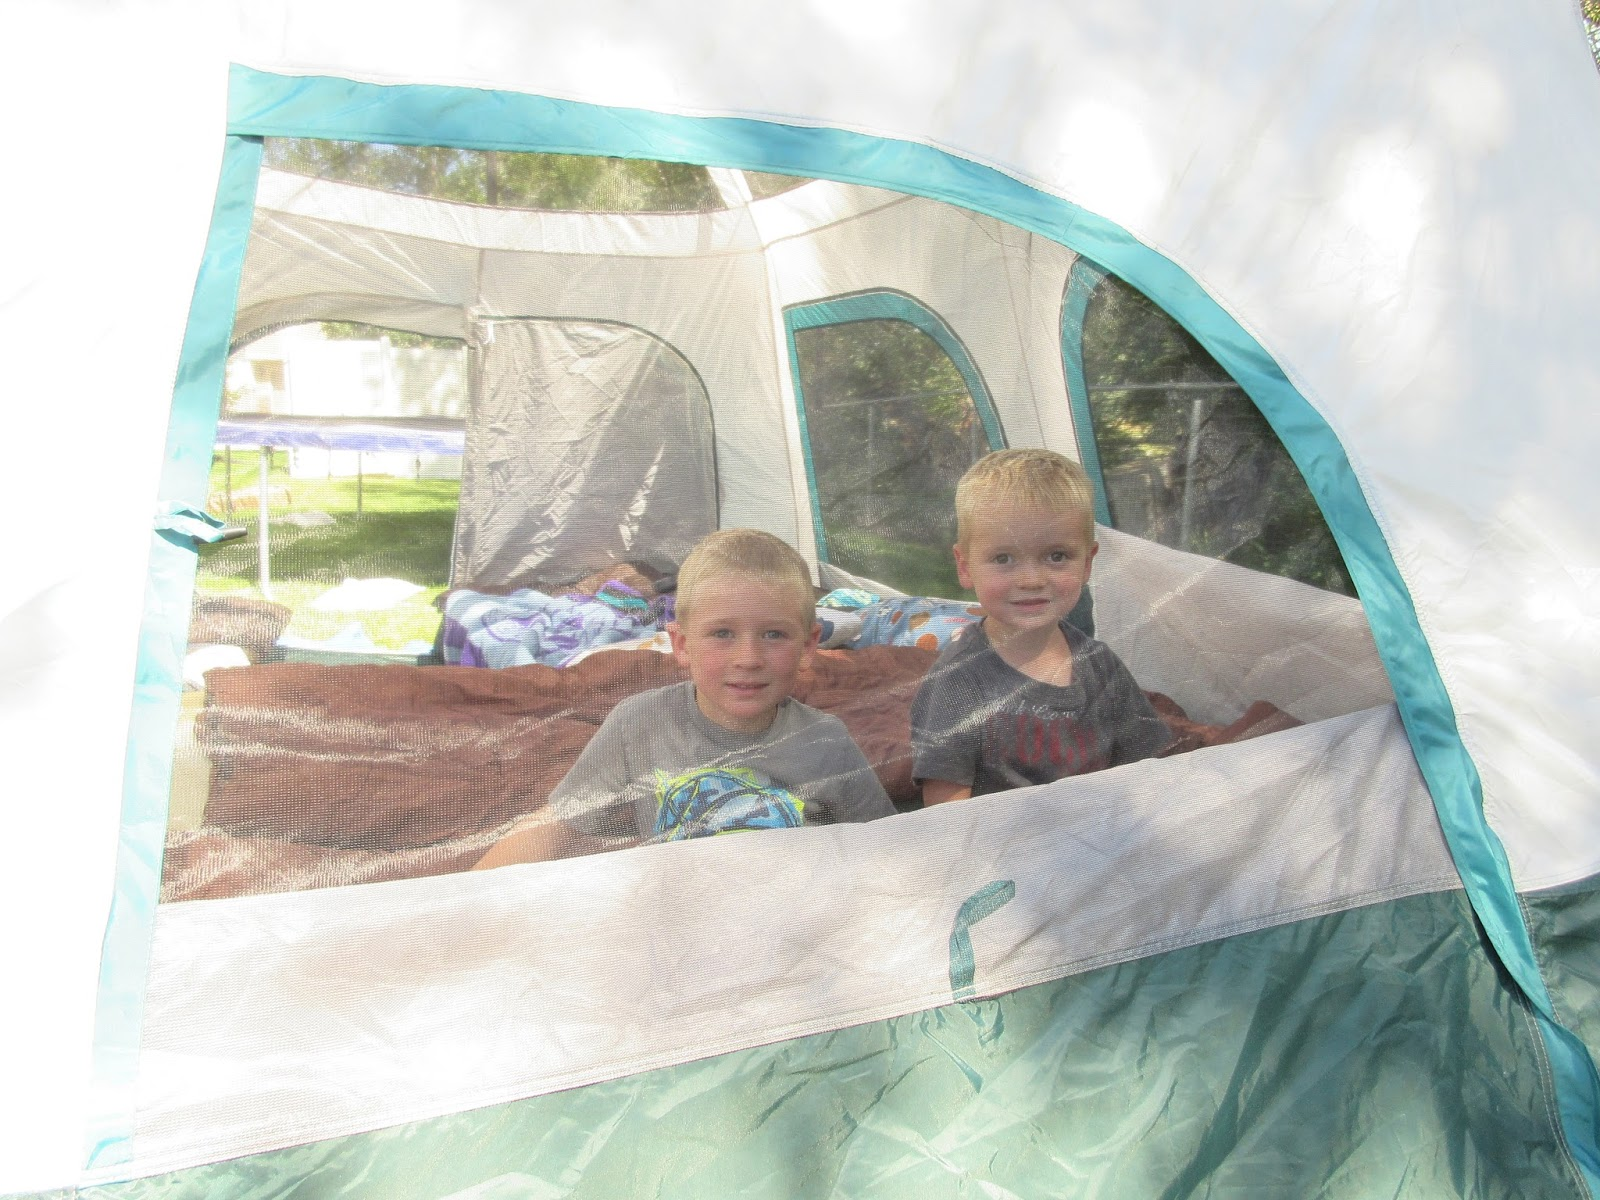 Sleeping In Tent In Backyard : The boys were super excited to sleep in the tent